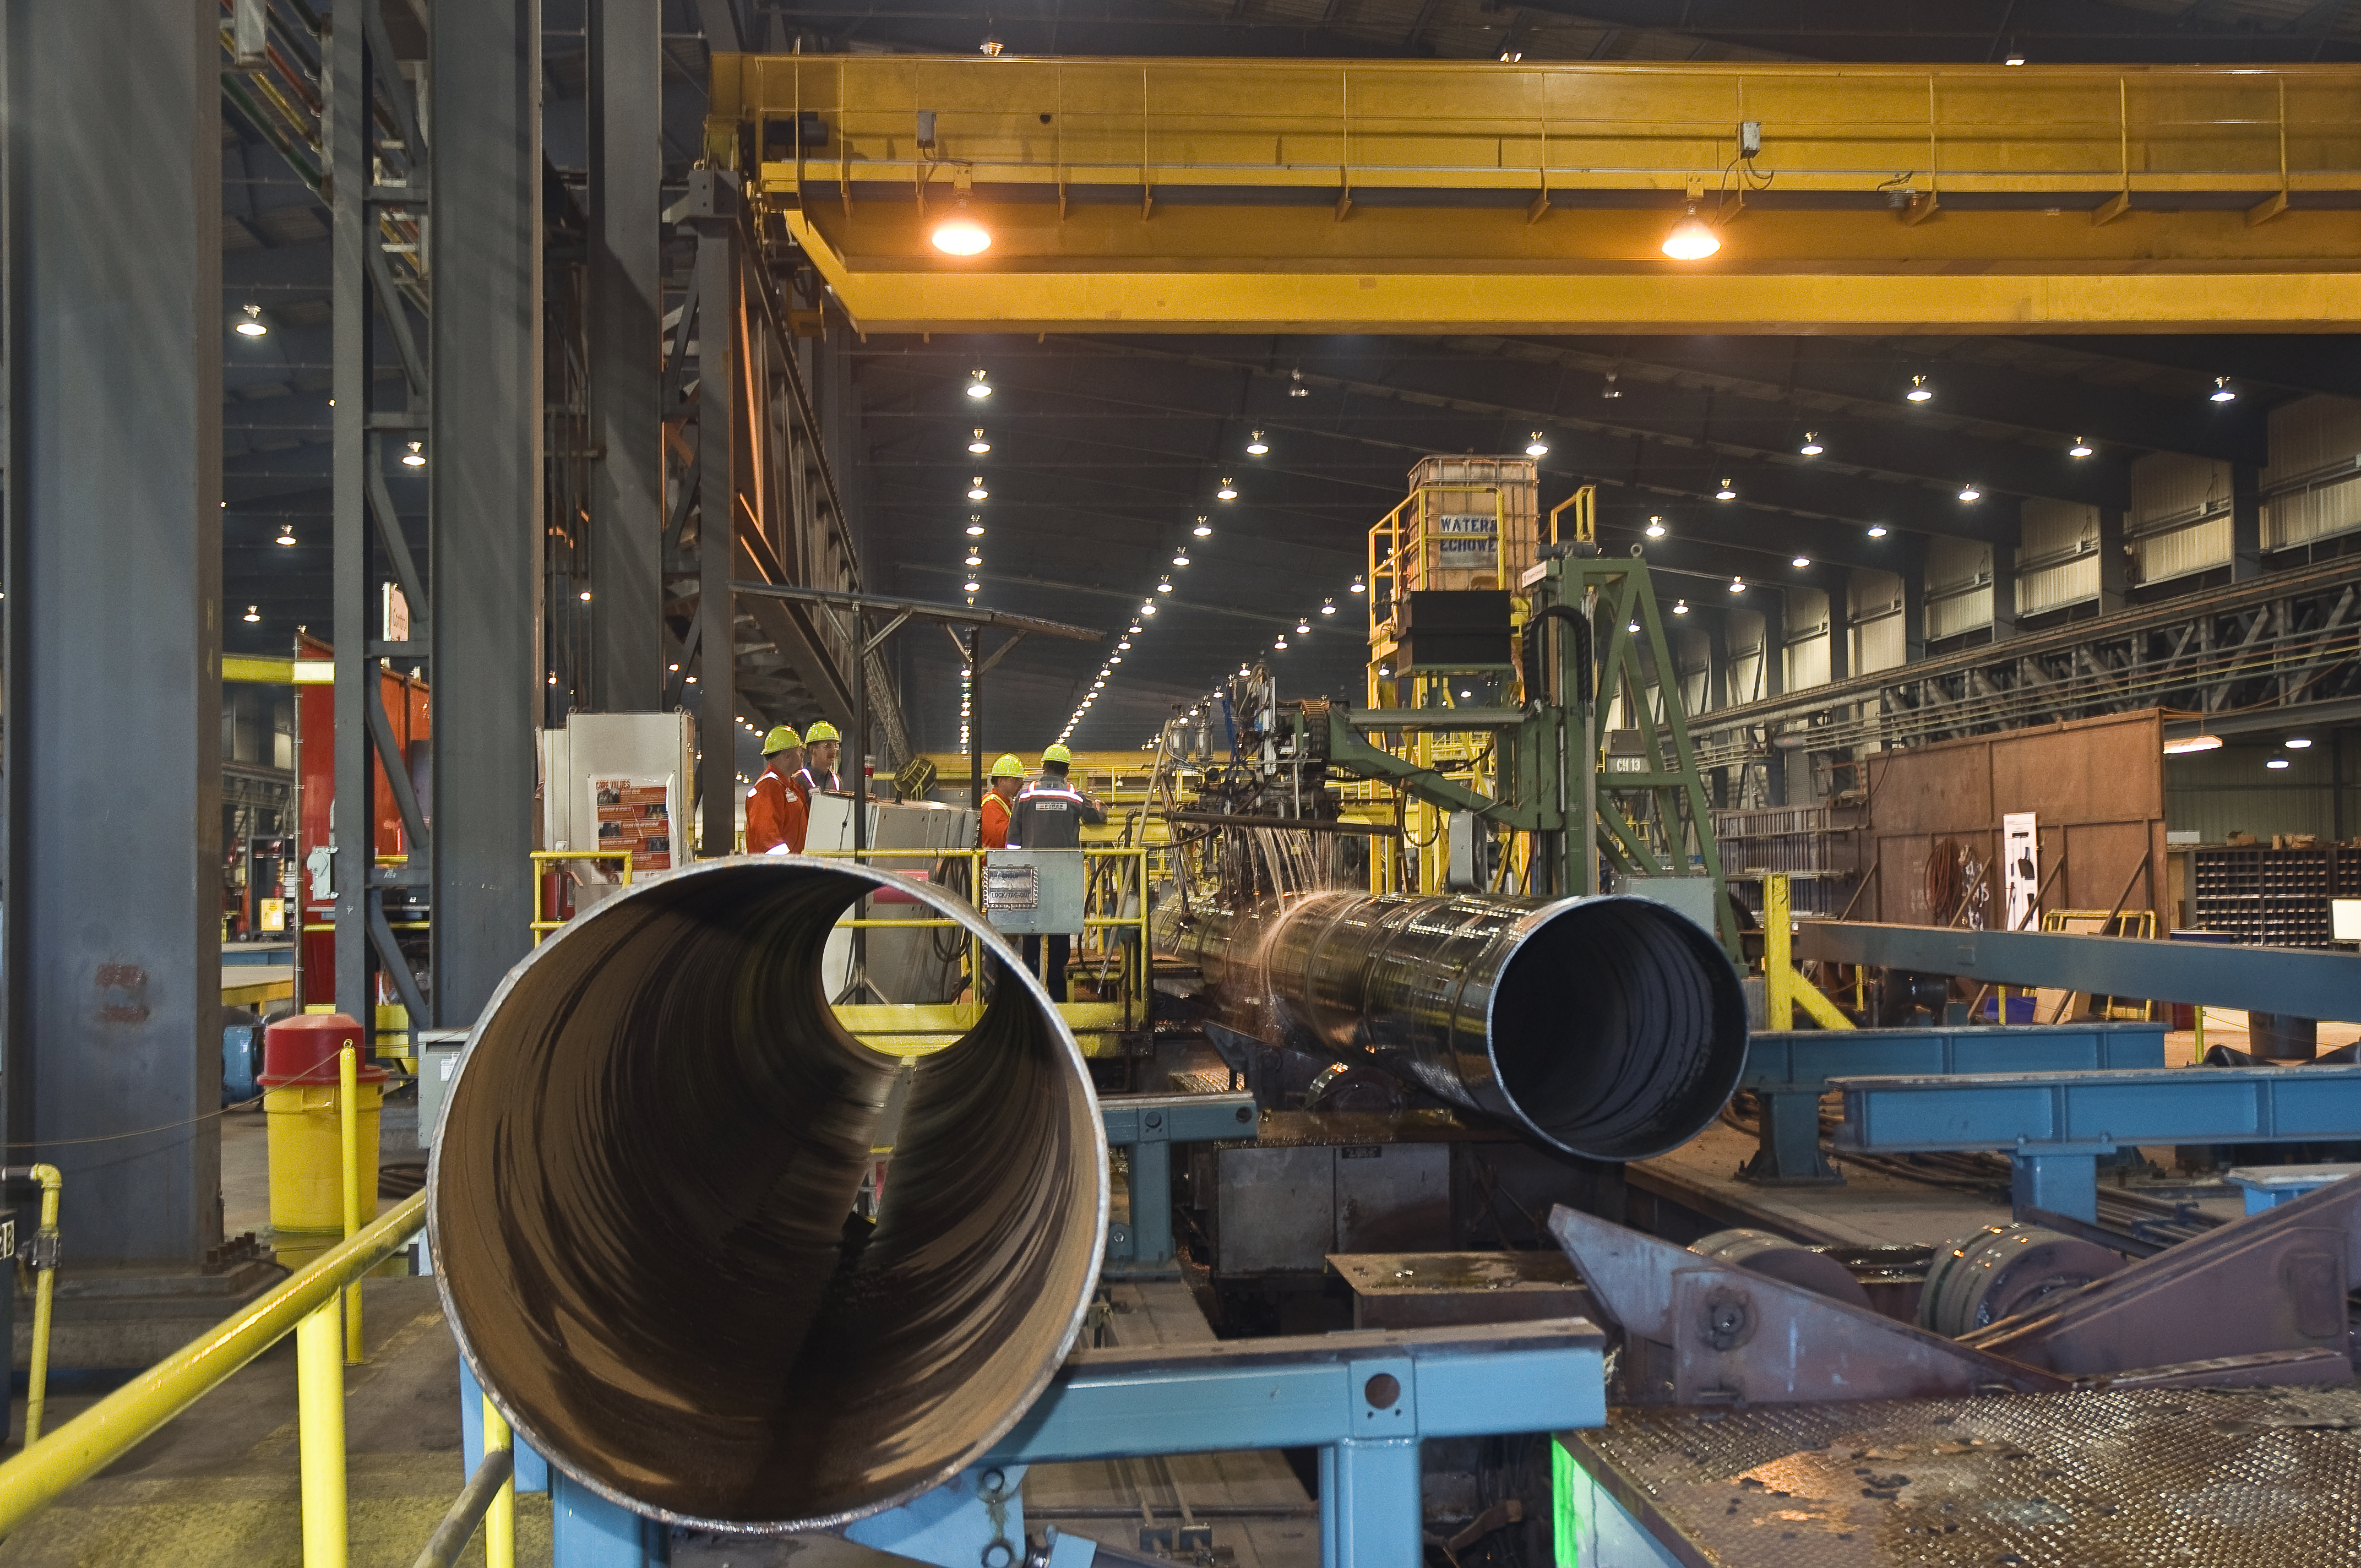 EVRAZ: A World Leader in Pipe Manufacturing - Trans Mountain